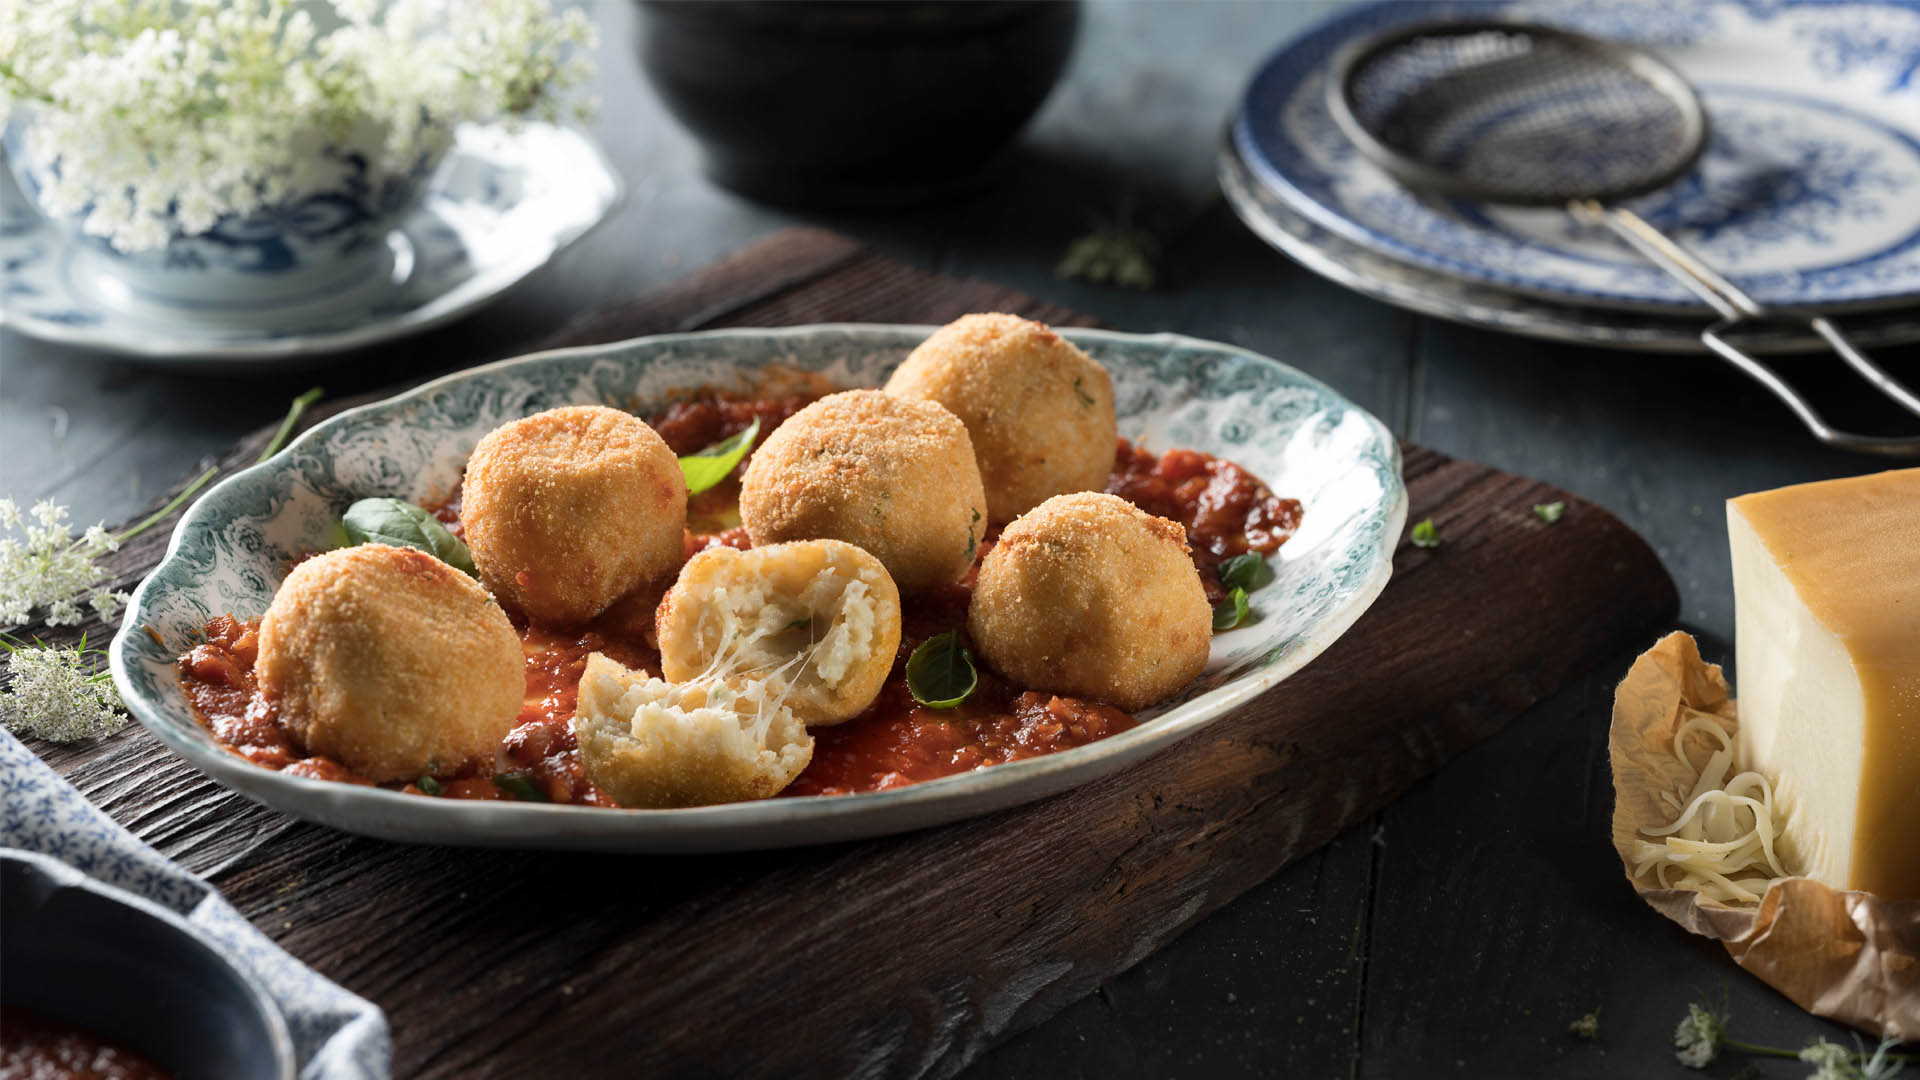 A dark grey bowl with ornate details, with golden  double cheese arancini balls in tomato sauce, all sitting on a dark wood table top, surrounded by flowers, a cast iron pan, and additional plates and serving of arancini balls.